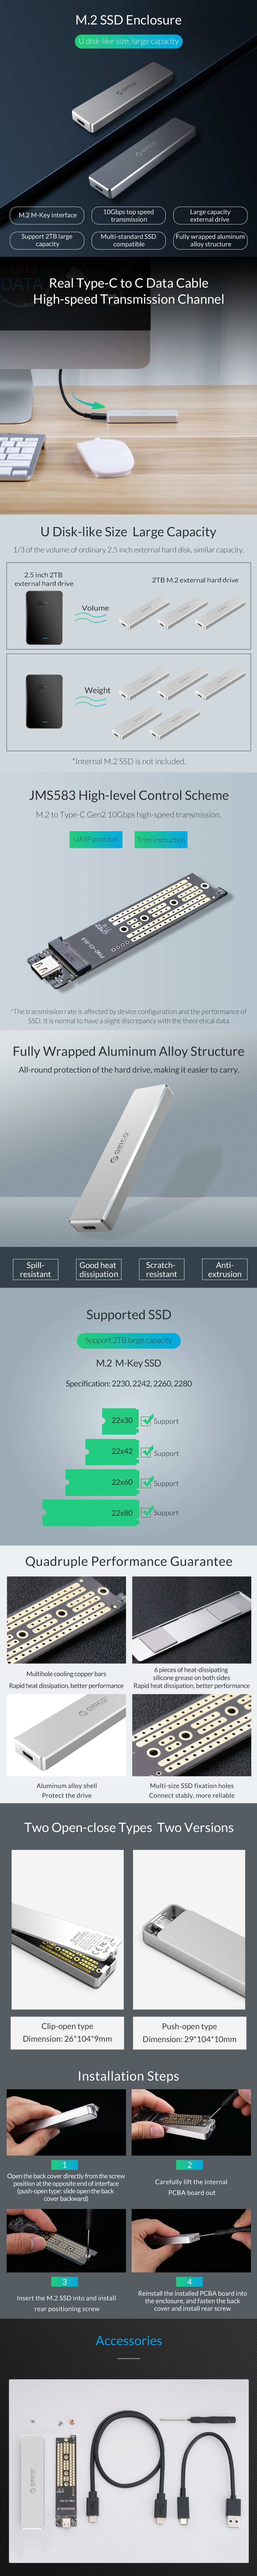 A large marketing image providing additional information about the product ORICO Mini Push-Open NVMe M.2 SSD Type-C Enclosure - Additional alt info not provided